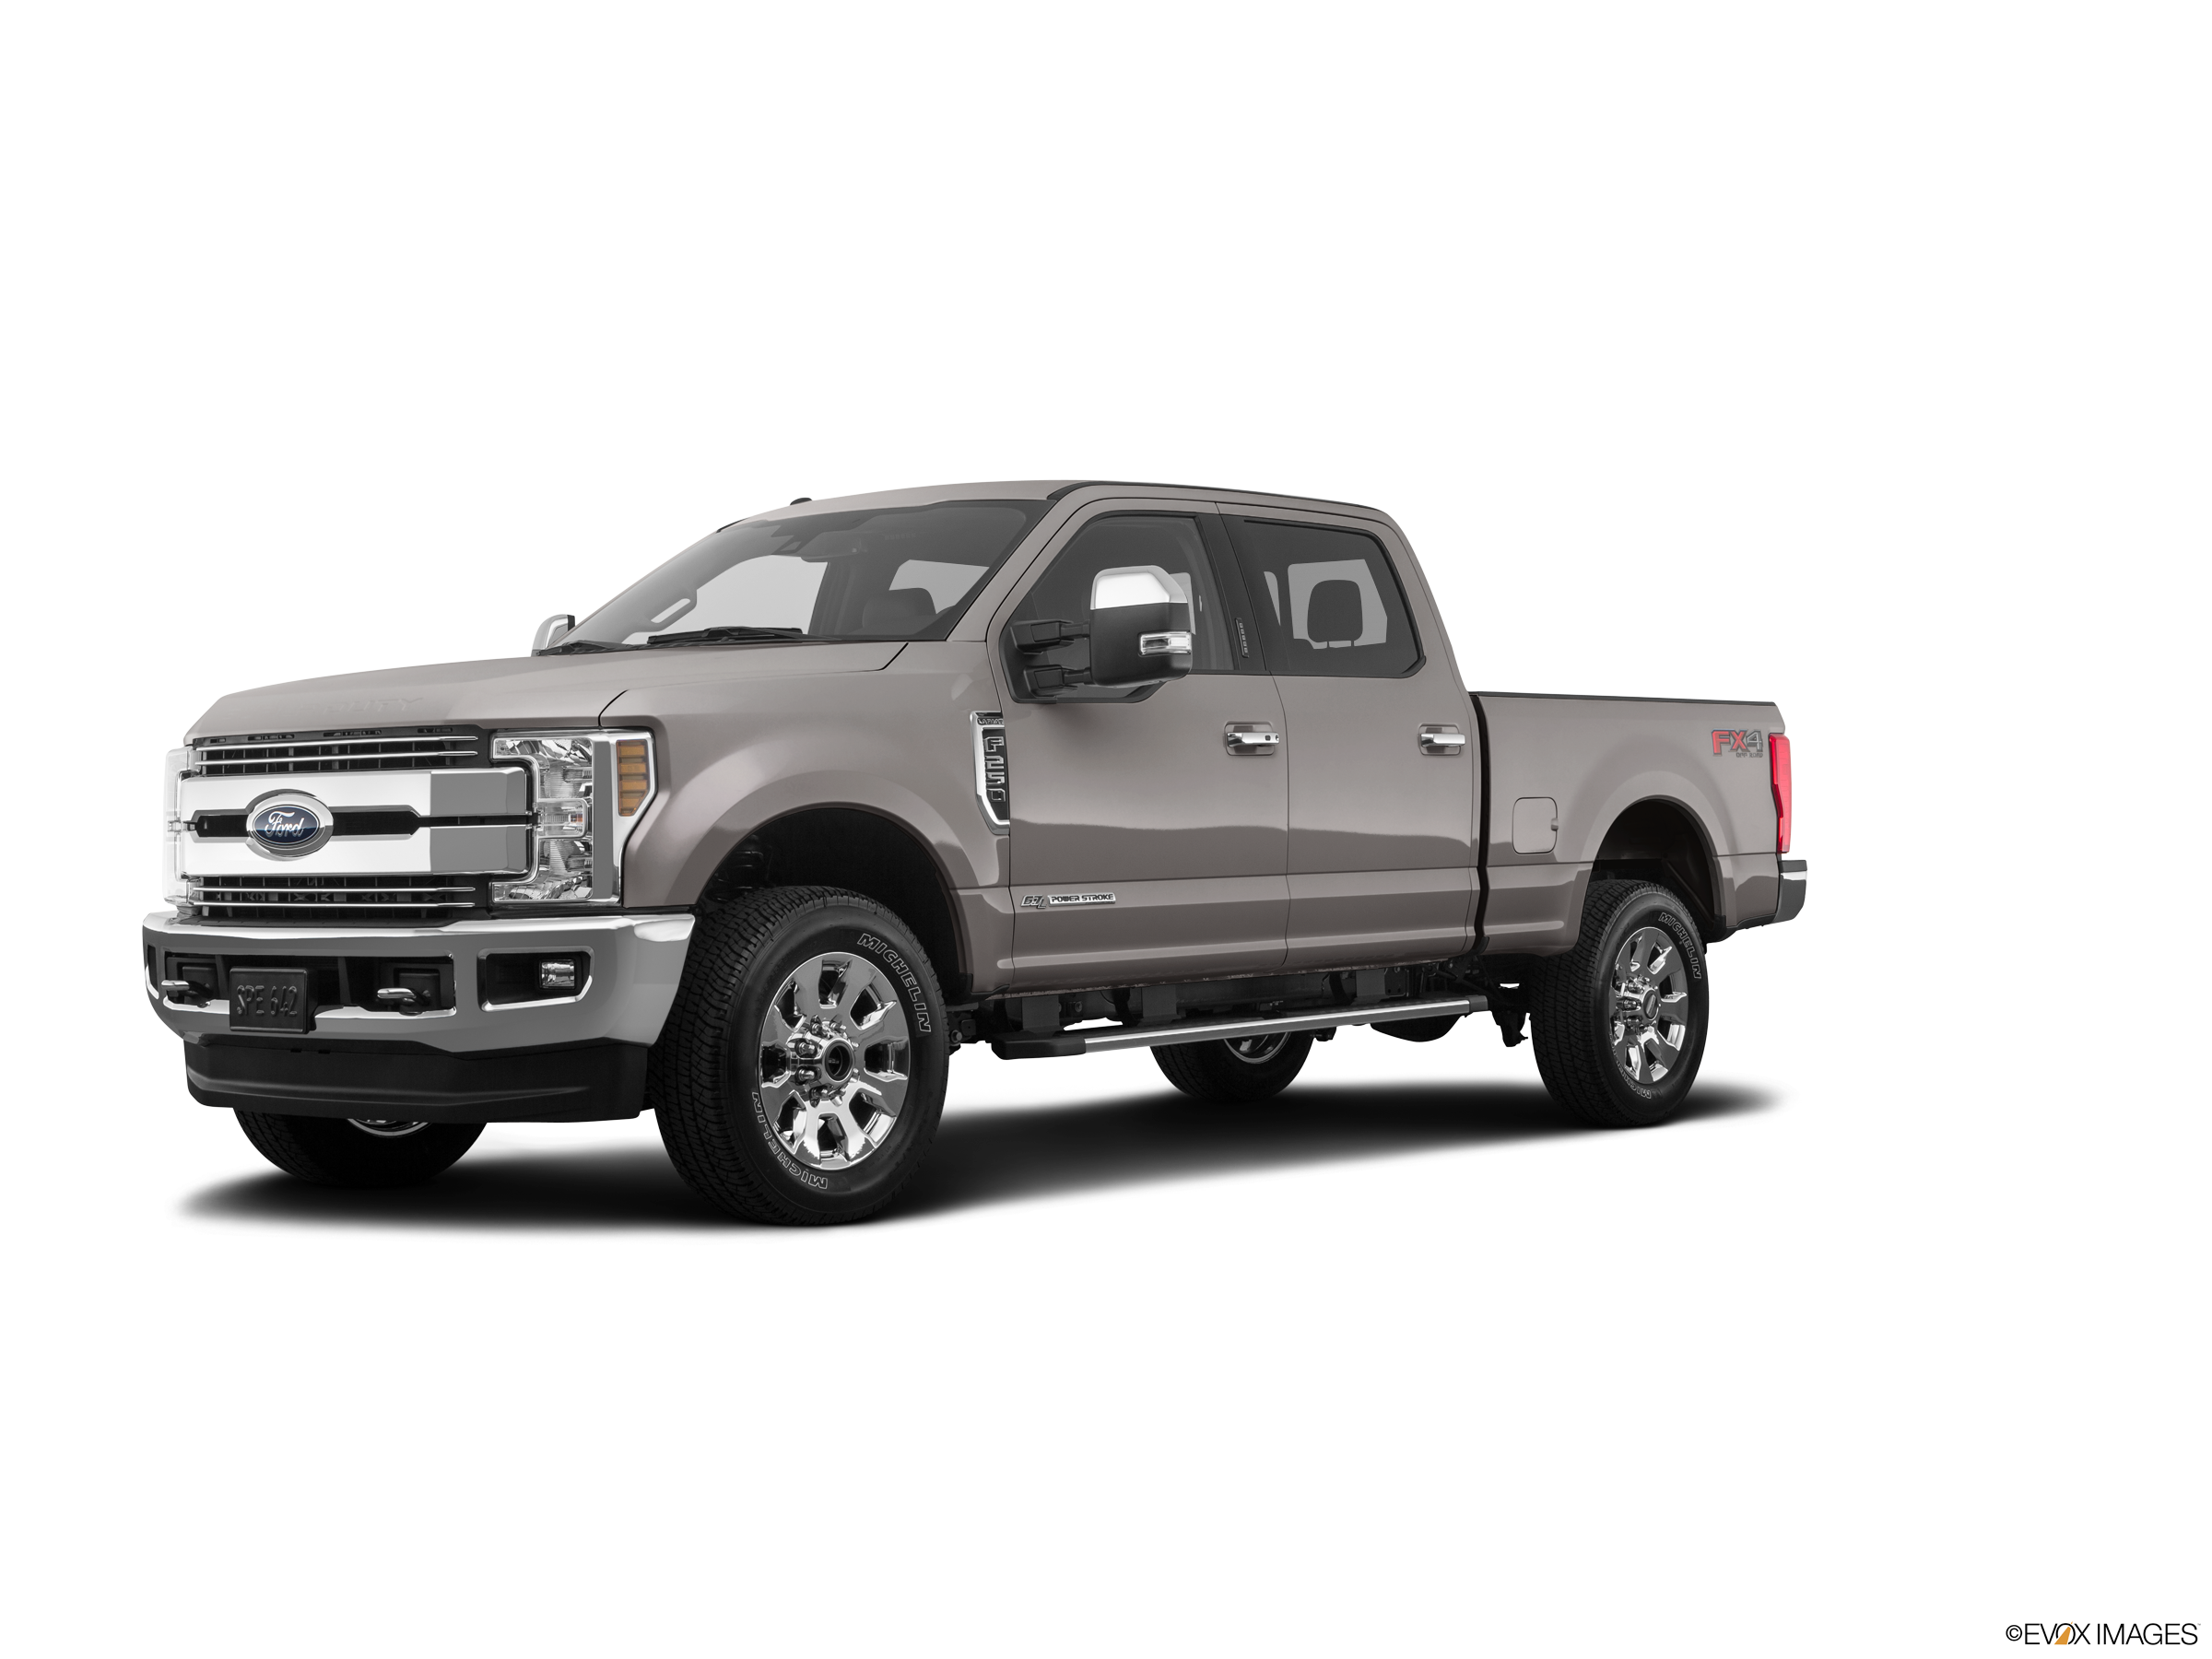 Highest Horsepower Trucks of 2018 - 2018 Ford F250 Super Duty Crew Cab